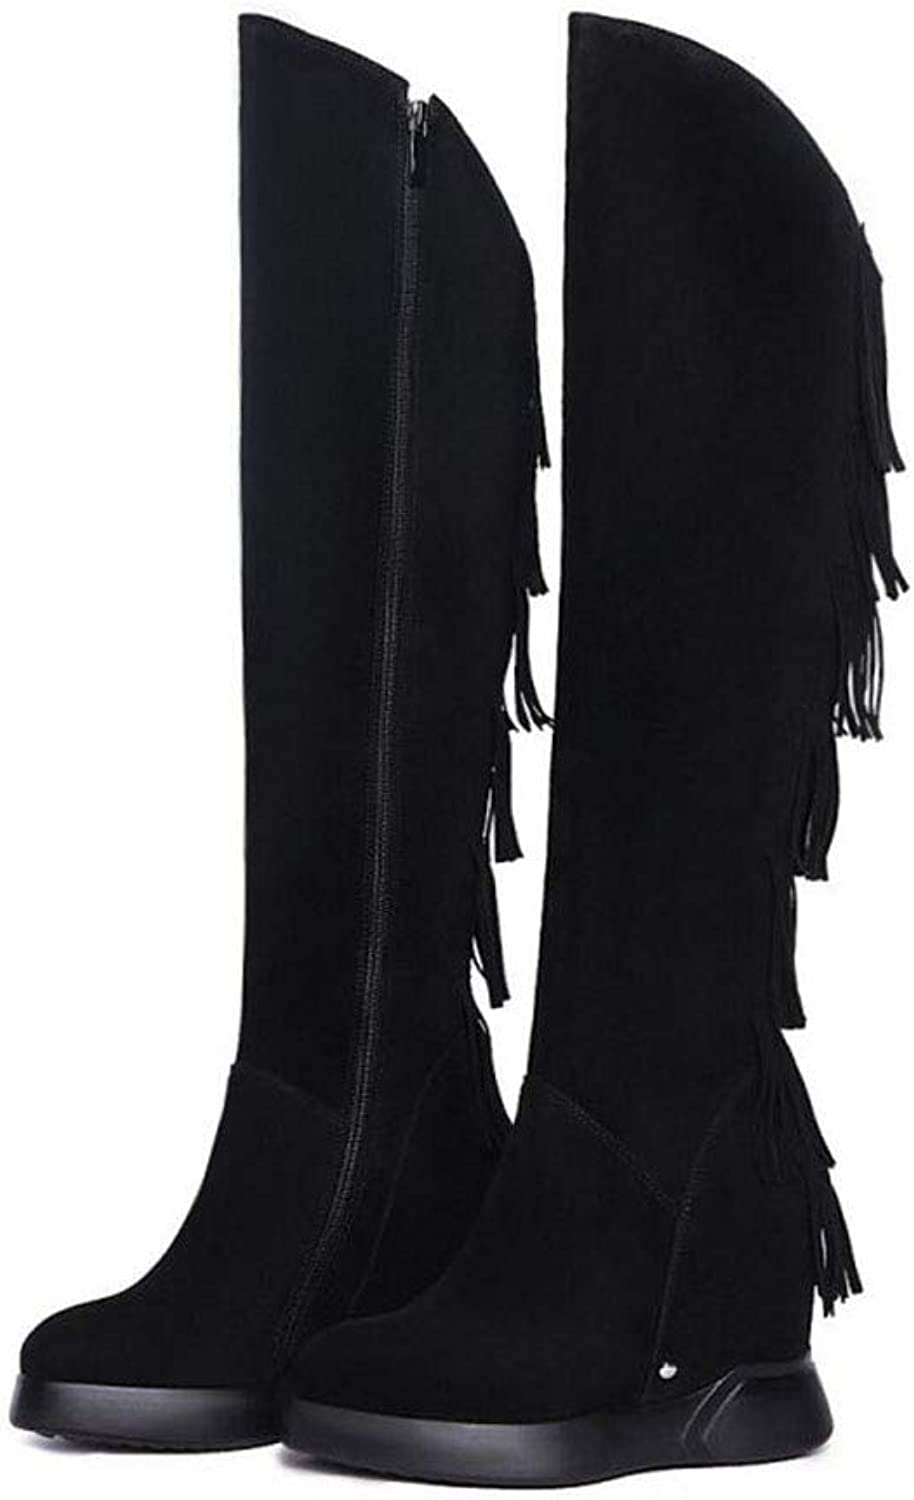 Women's Long Boots, Fall Winter Scrub Leather Wedge Tassel Boots, Increased Knee Boots, High Boots (color   Black, Size   36)